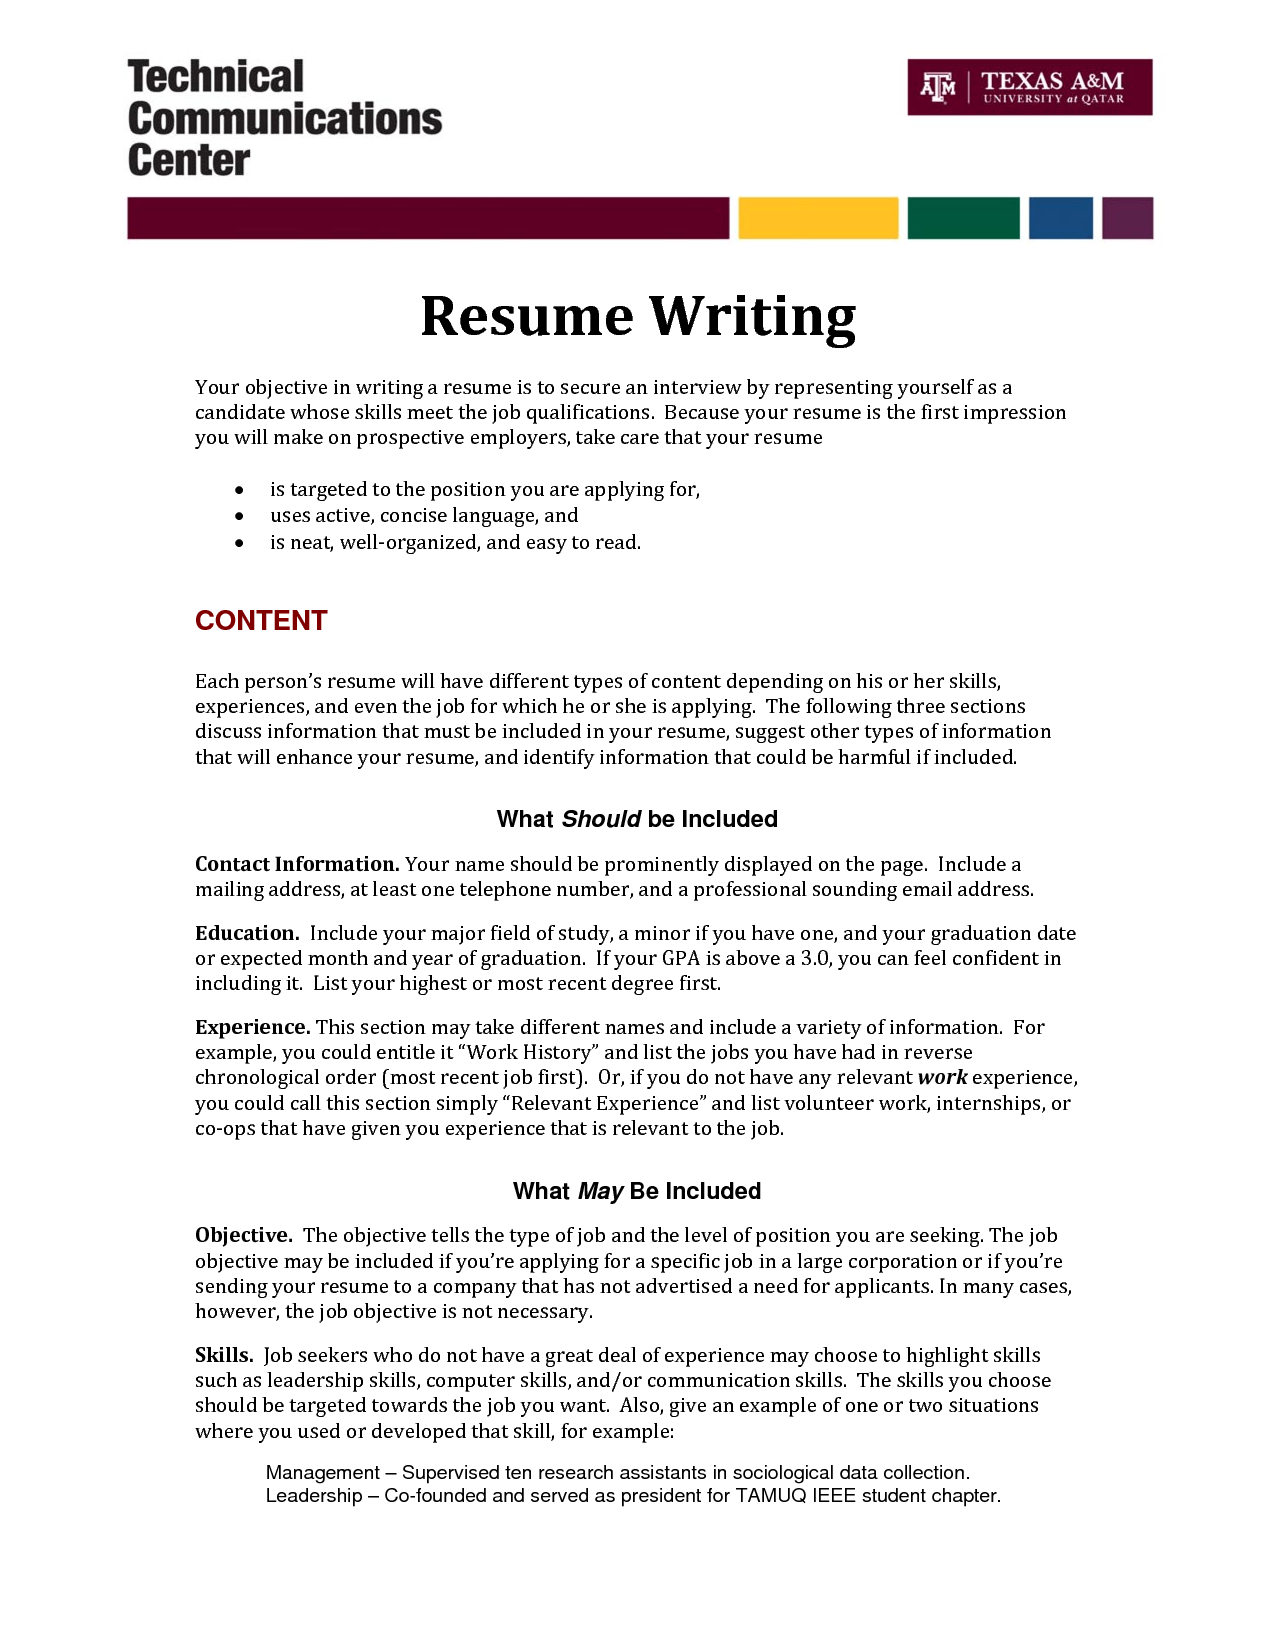 Delightful What To Write As An Objective For A Resume. Resume Objectives Writing ... On How To Write An Objective